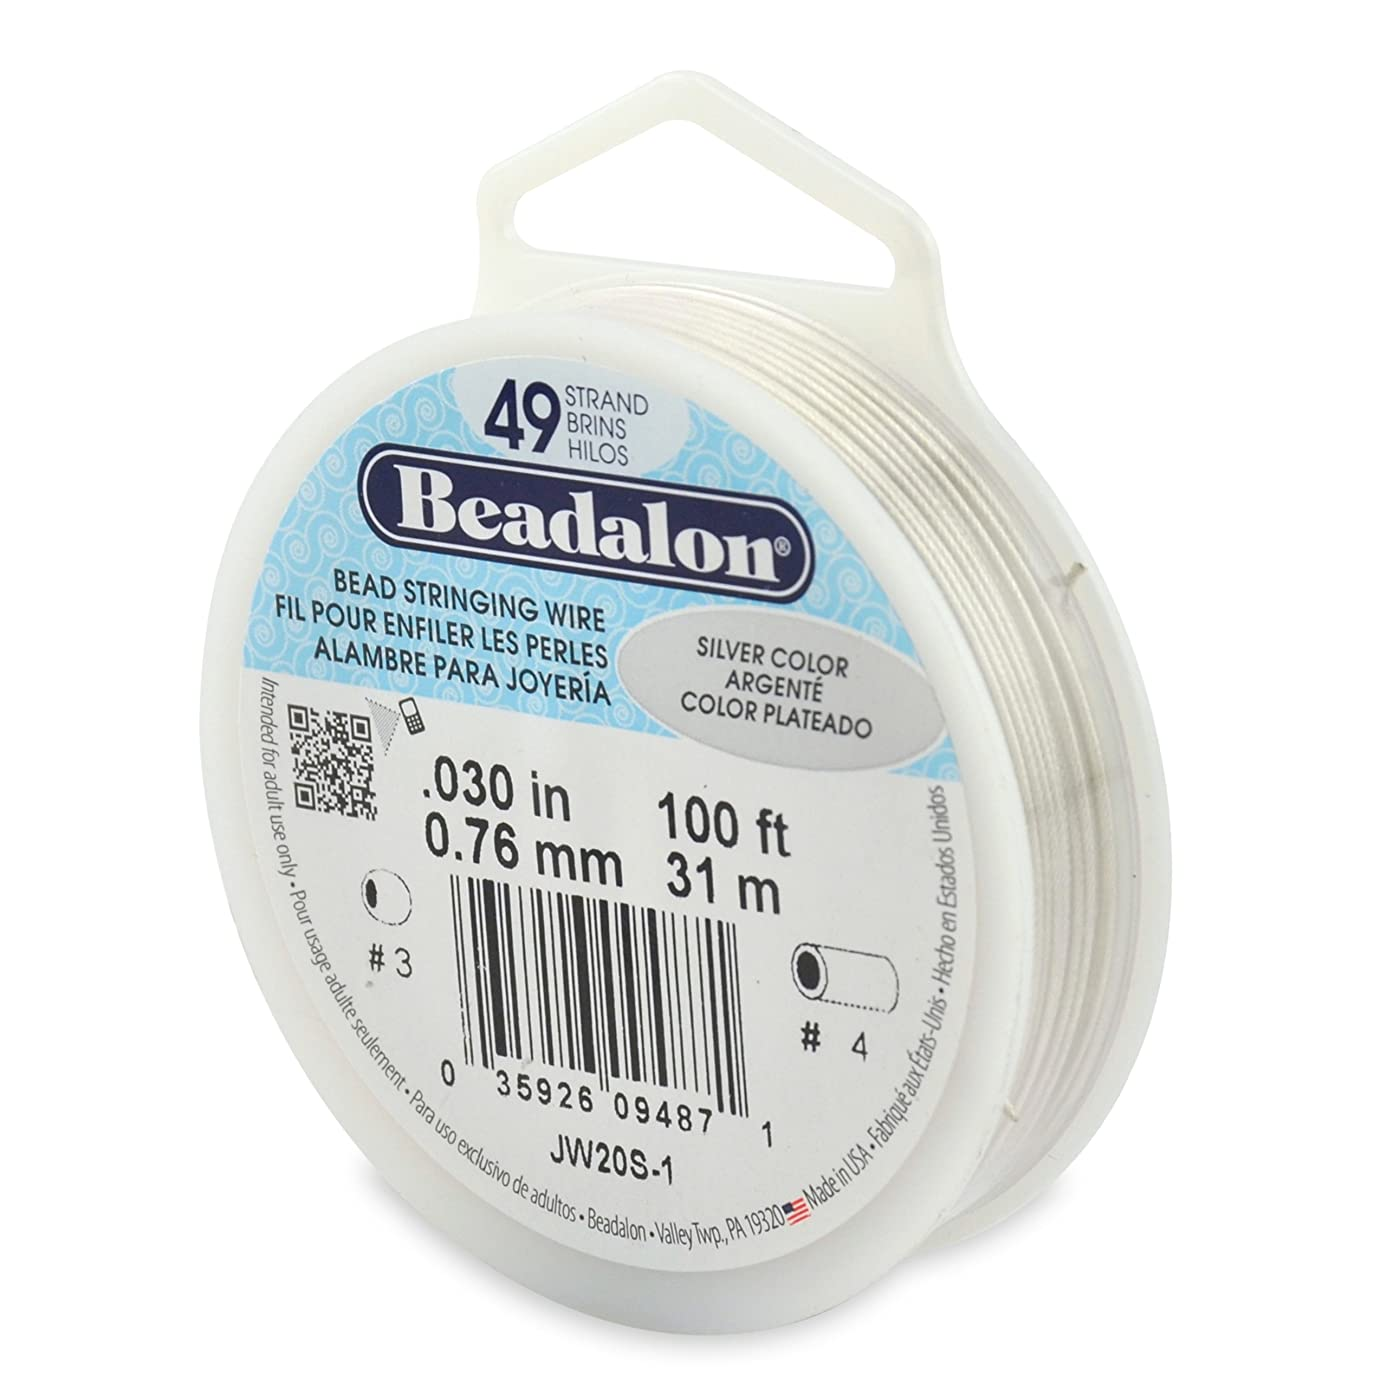 Beadalon 49-Strand Bead Stringing Wire, 0.030-Inch, Silver Color, 100-Feet